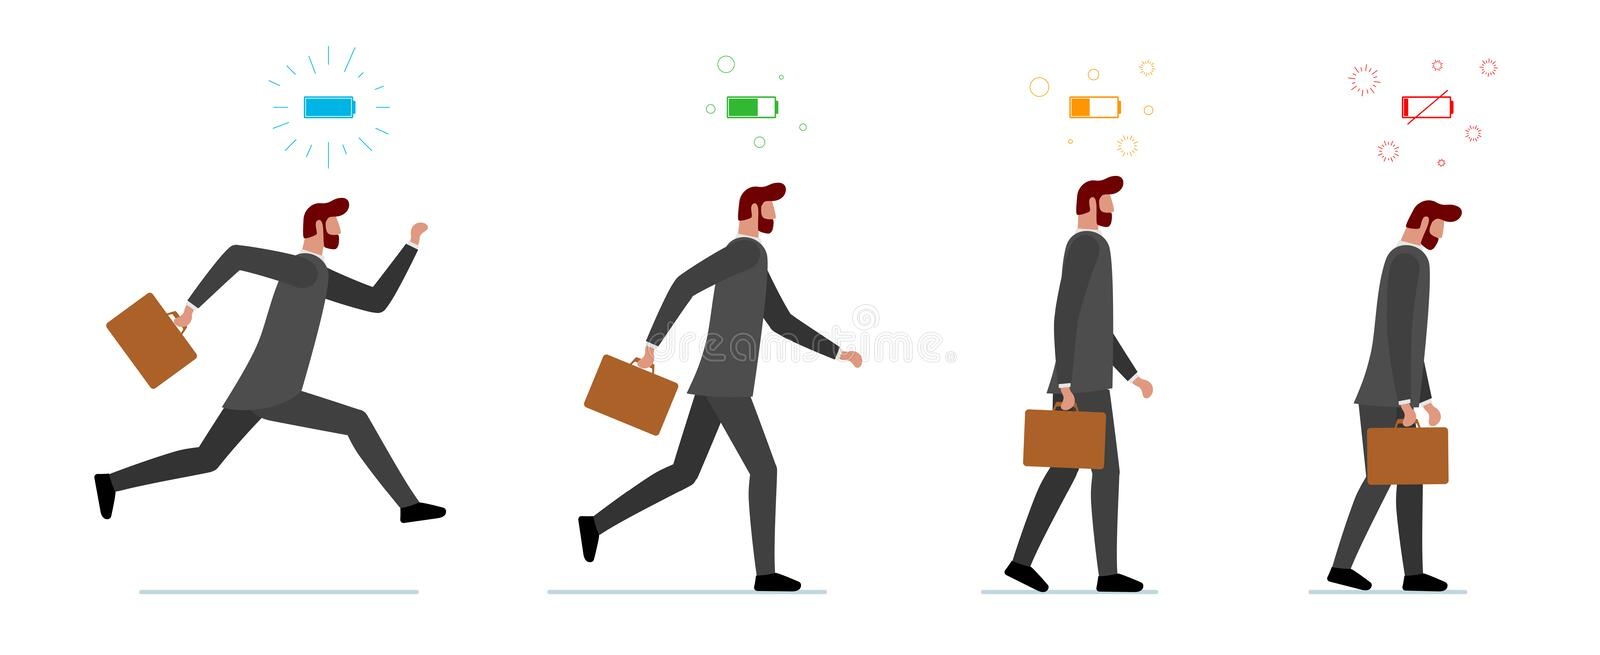 Life energy full and tired businessman. Powerful person with high charge and uncharged battery level set. Worker male royalty free illustration